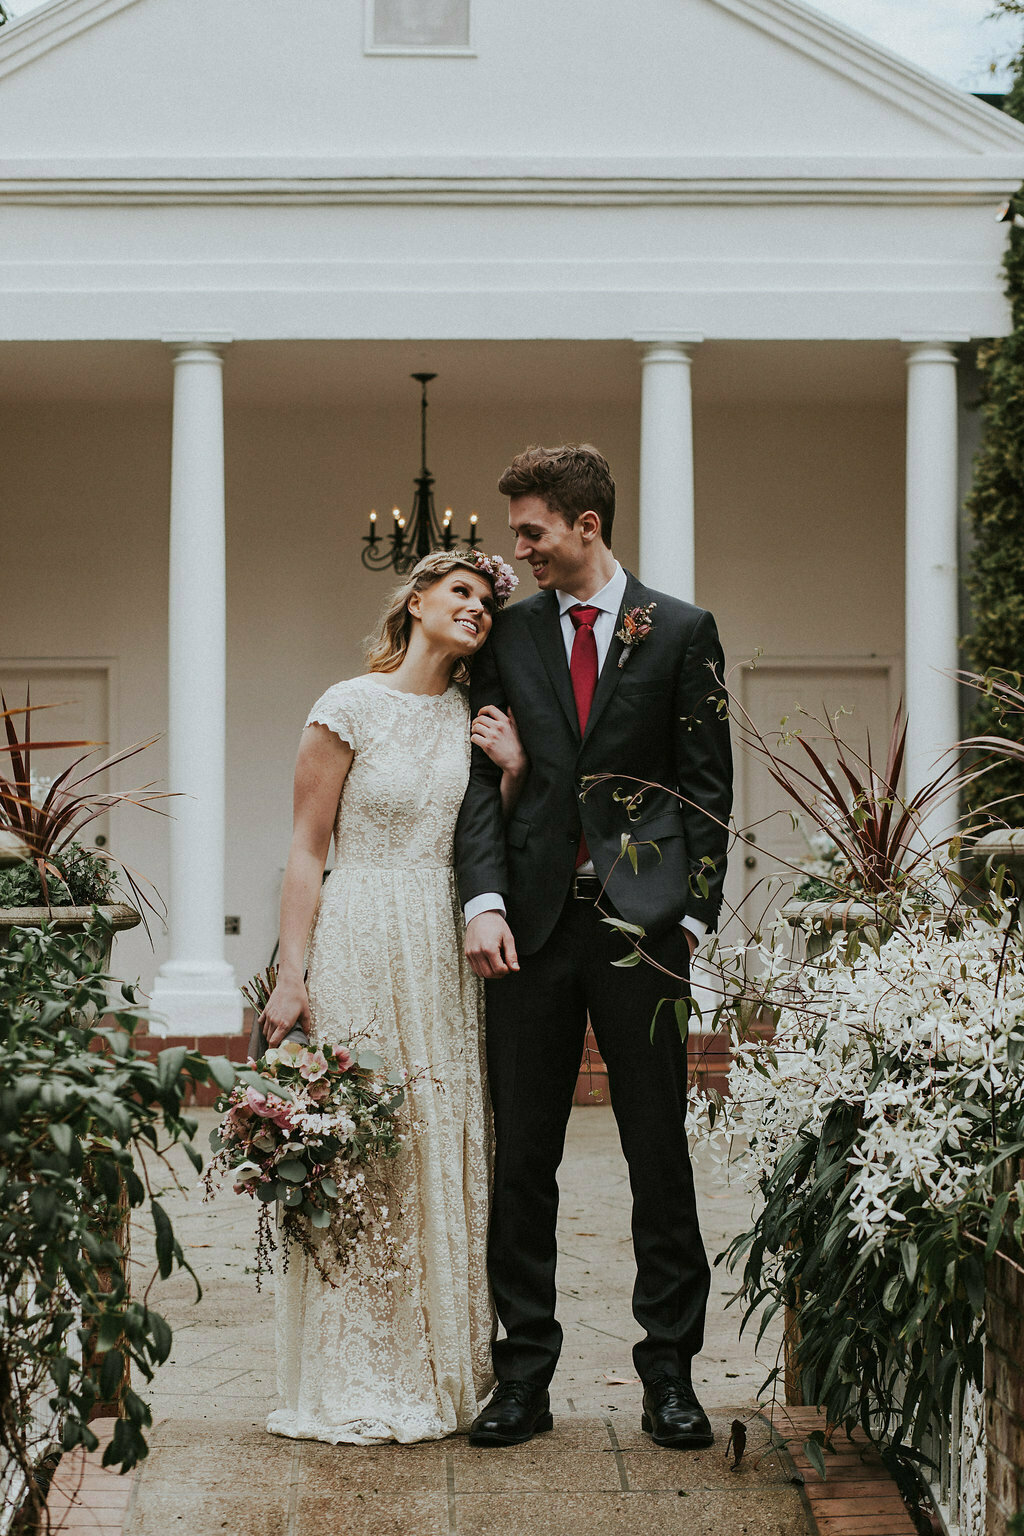 bohemian-lace-wedding-dress-with-pockets-and-open-back-without-train-for-a-more-casual-bride